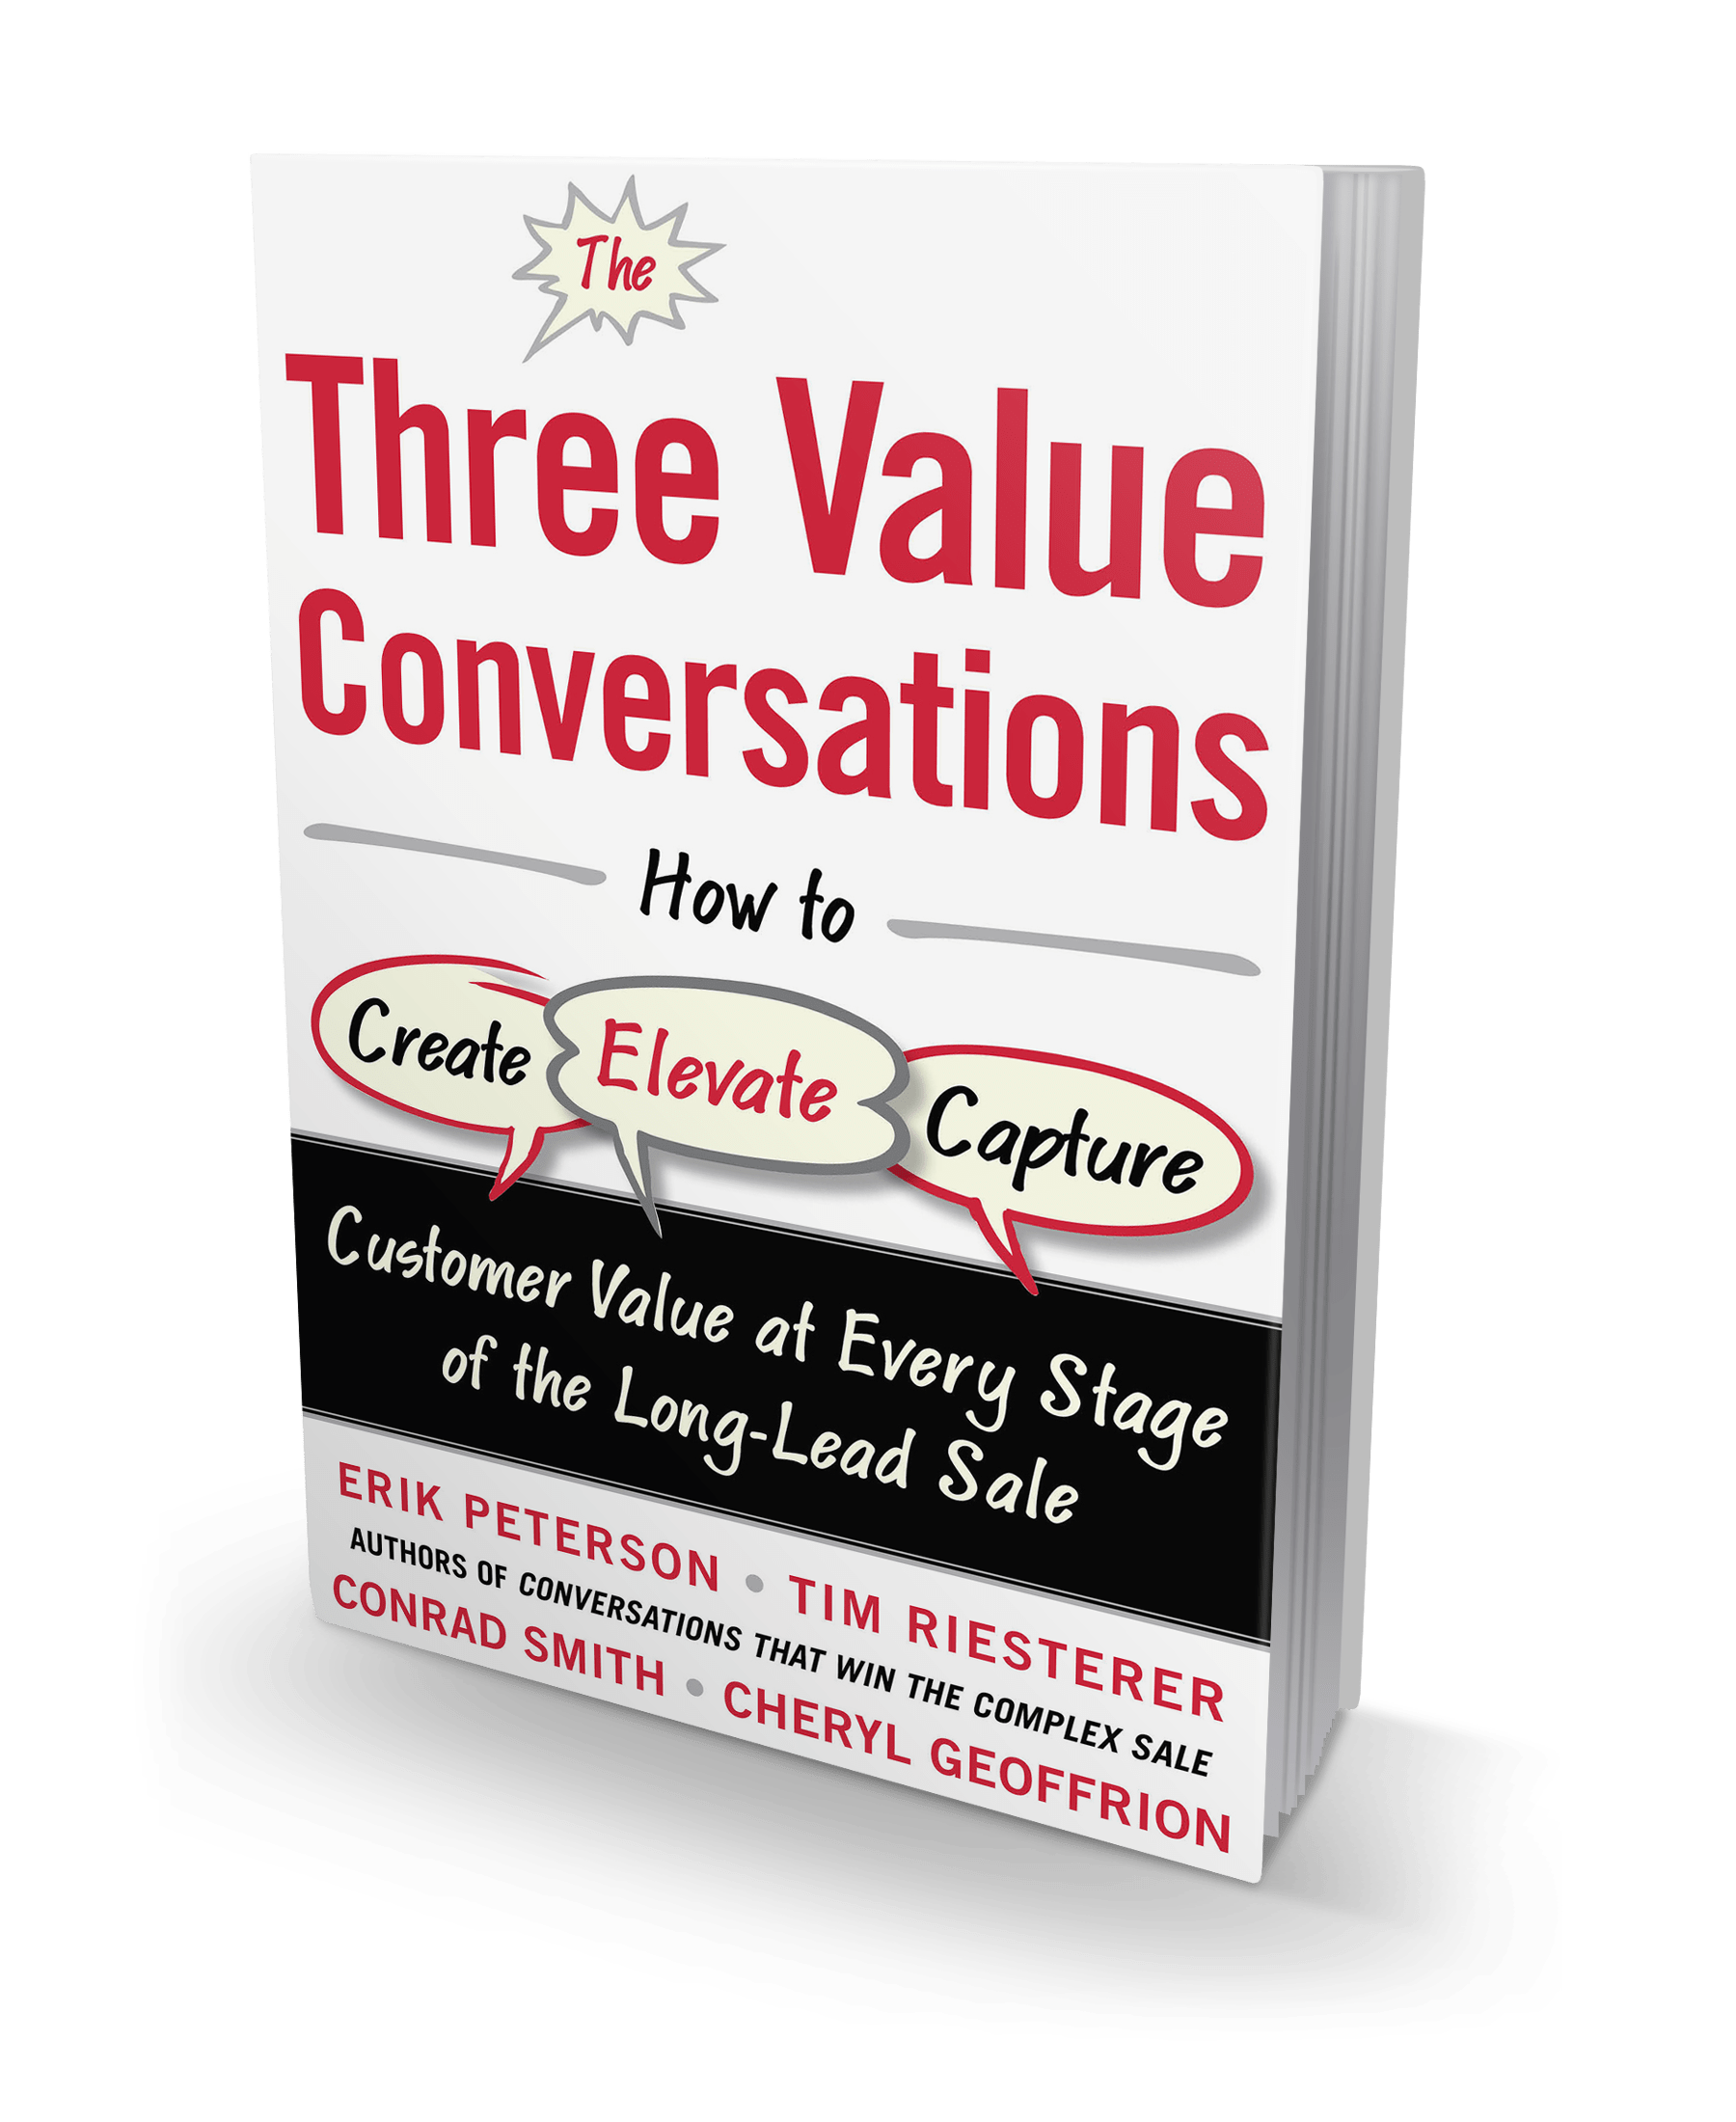 Sales Book: The Best B2B Marketing and Sales Training Book